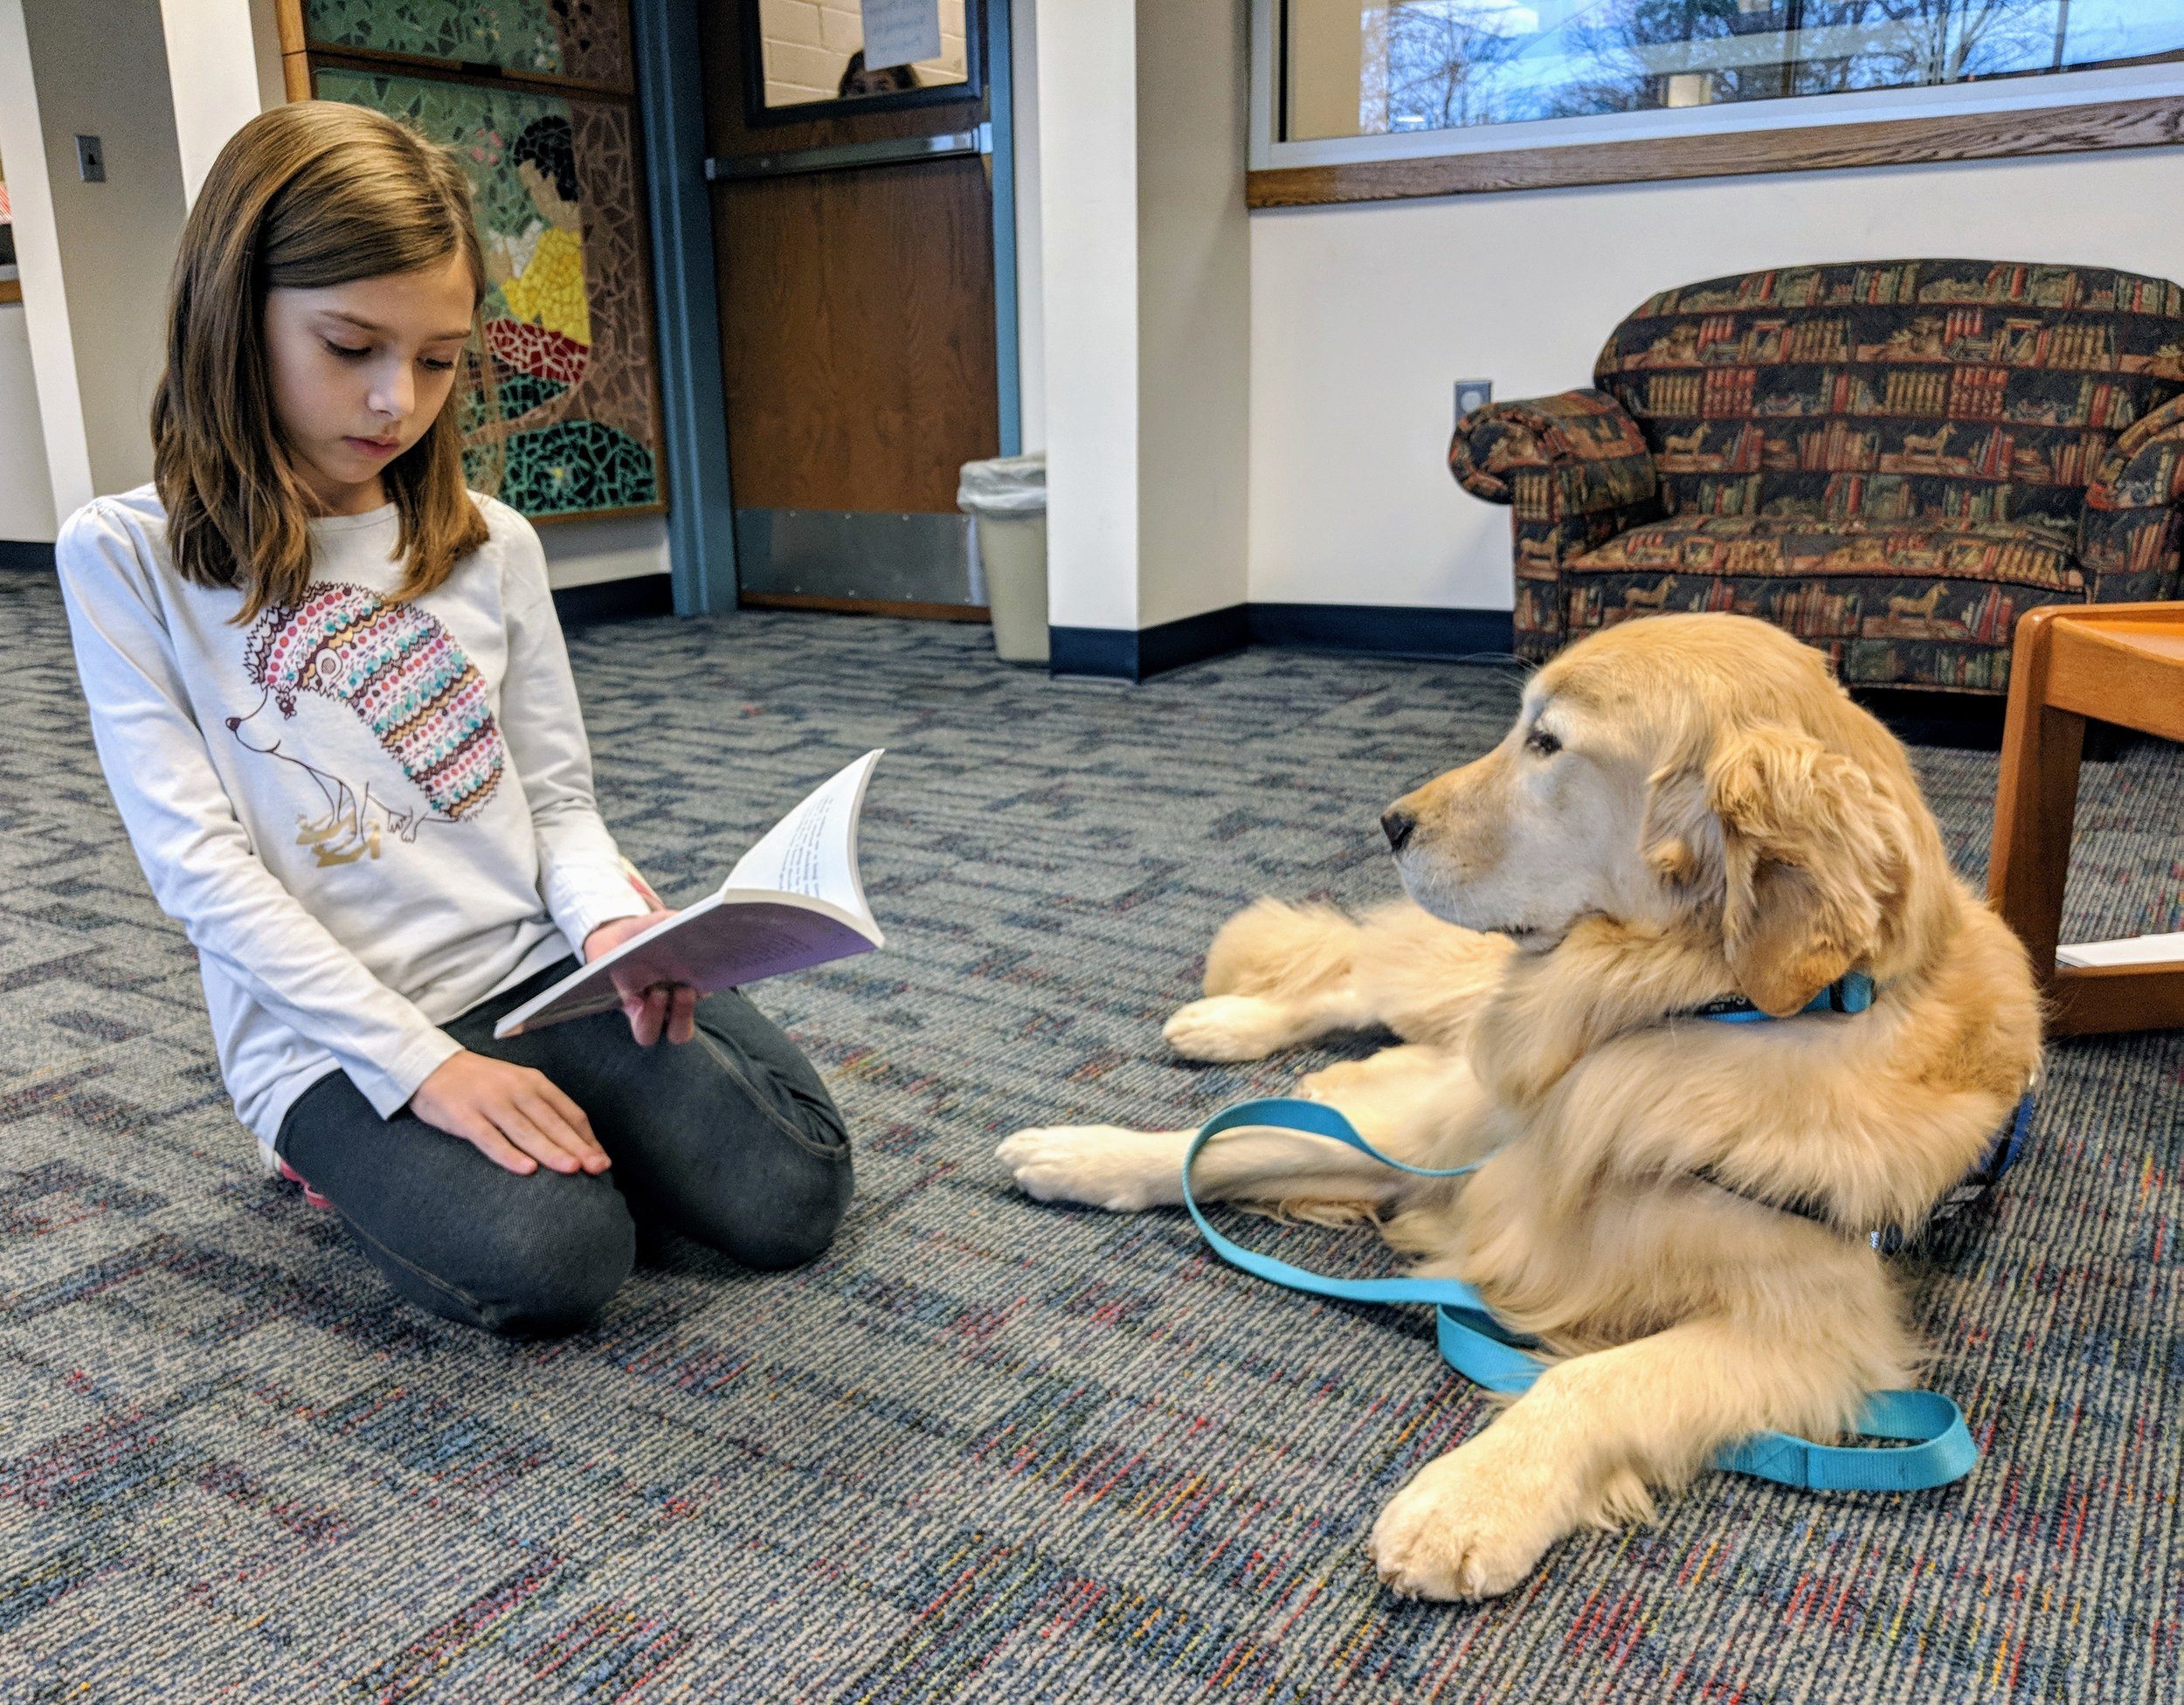 Neeko is a golden retriever who is part of the Ruff Ruff Reading program.